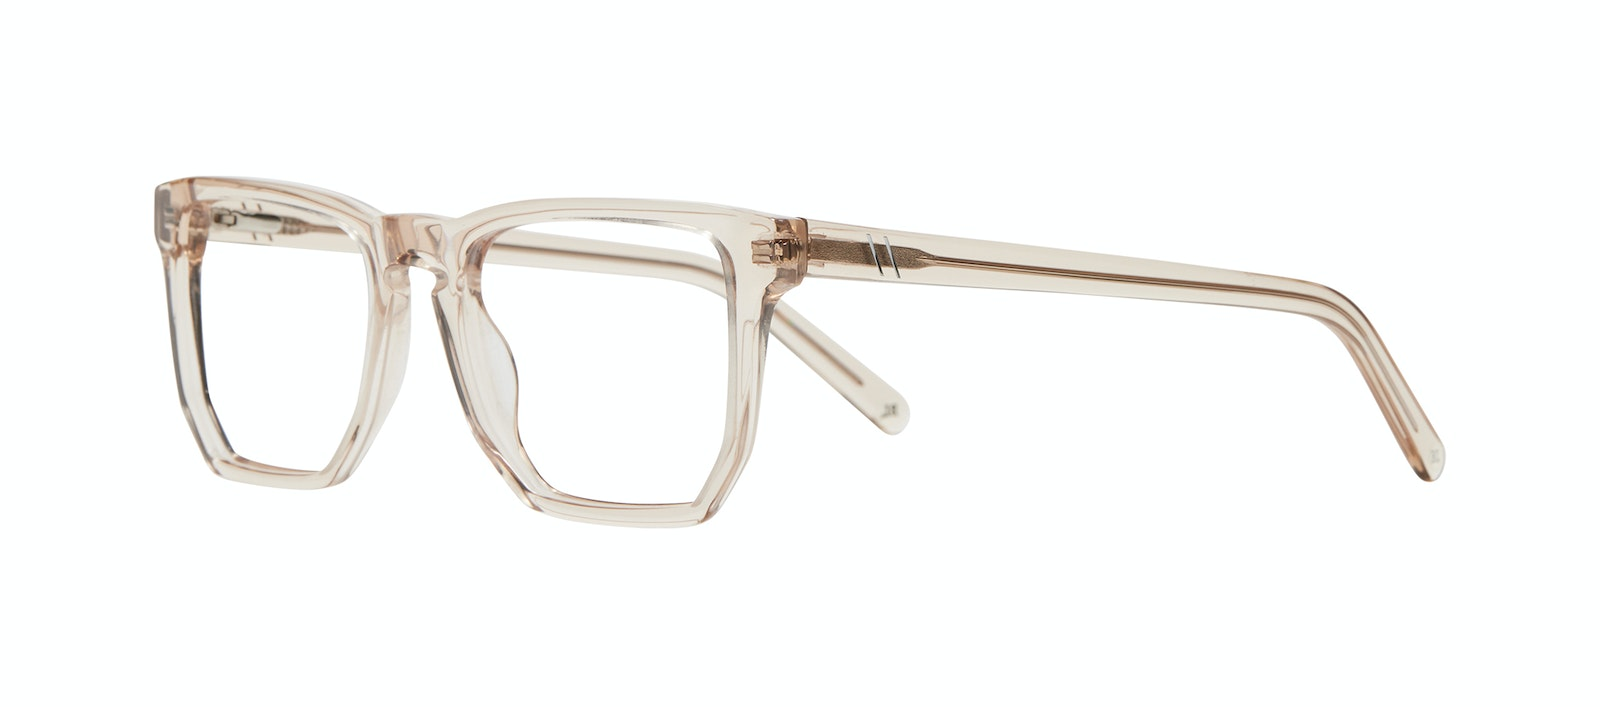 Affordable Fashion Glasses Square Eyeglasses Men Andy Golden Tilt